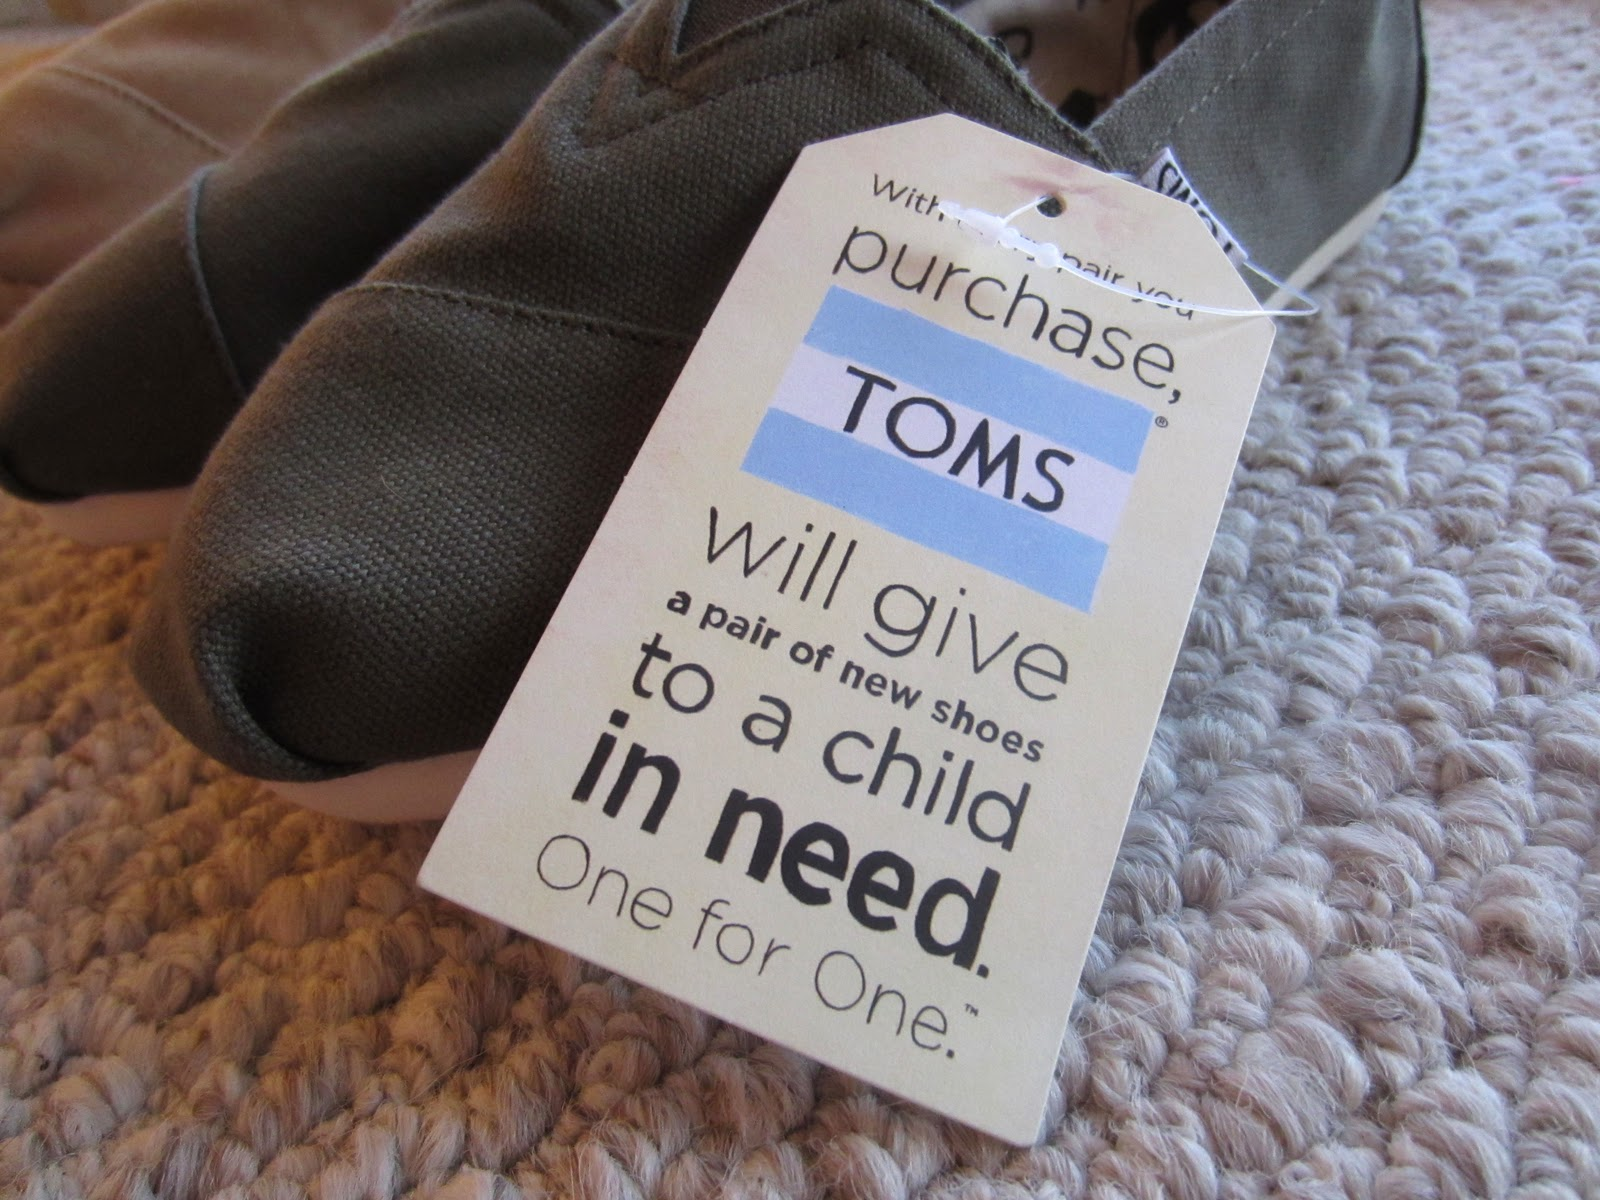 TOMS will give a pair of shoes to a child in need